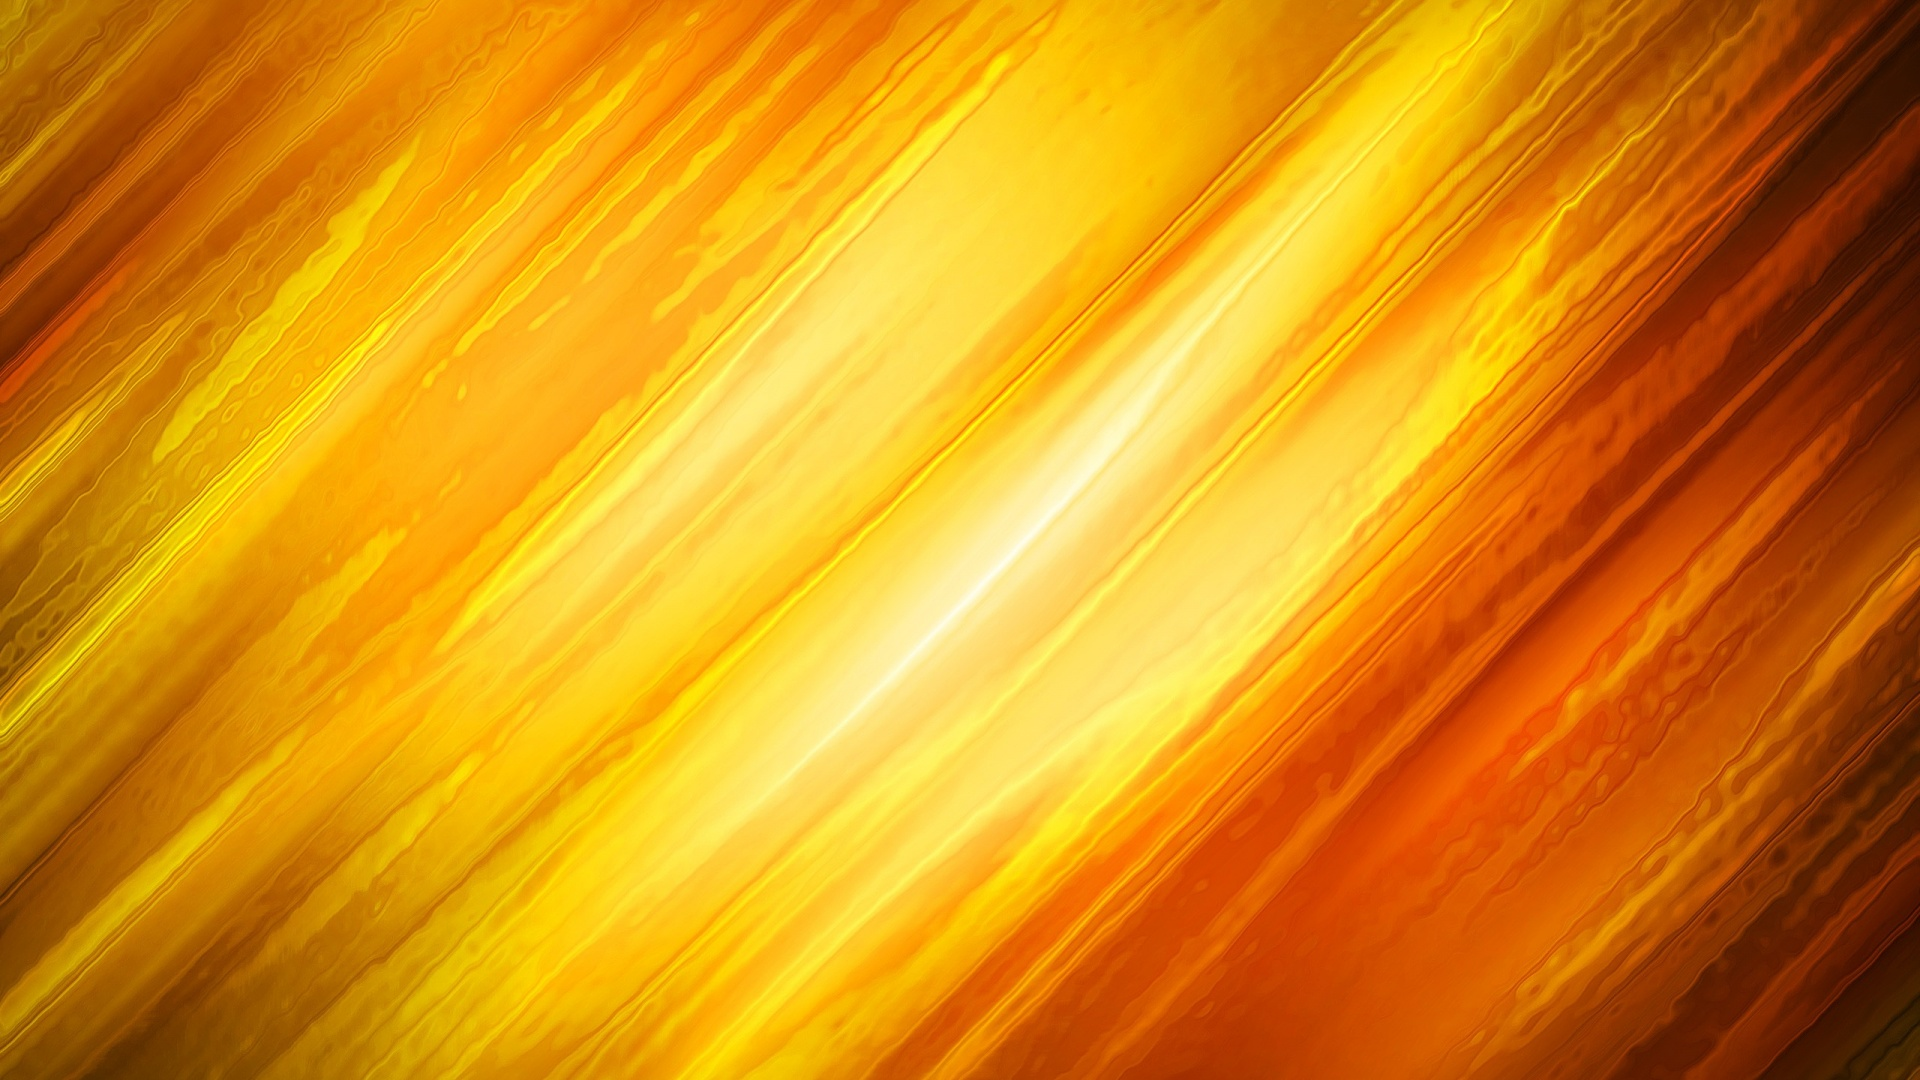 Best Ideas About Iphone Wallpaper Yellow On Pinterest 1920x1080